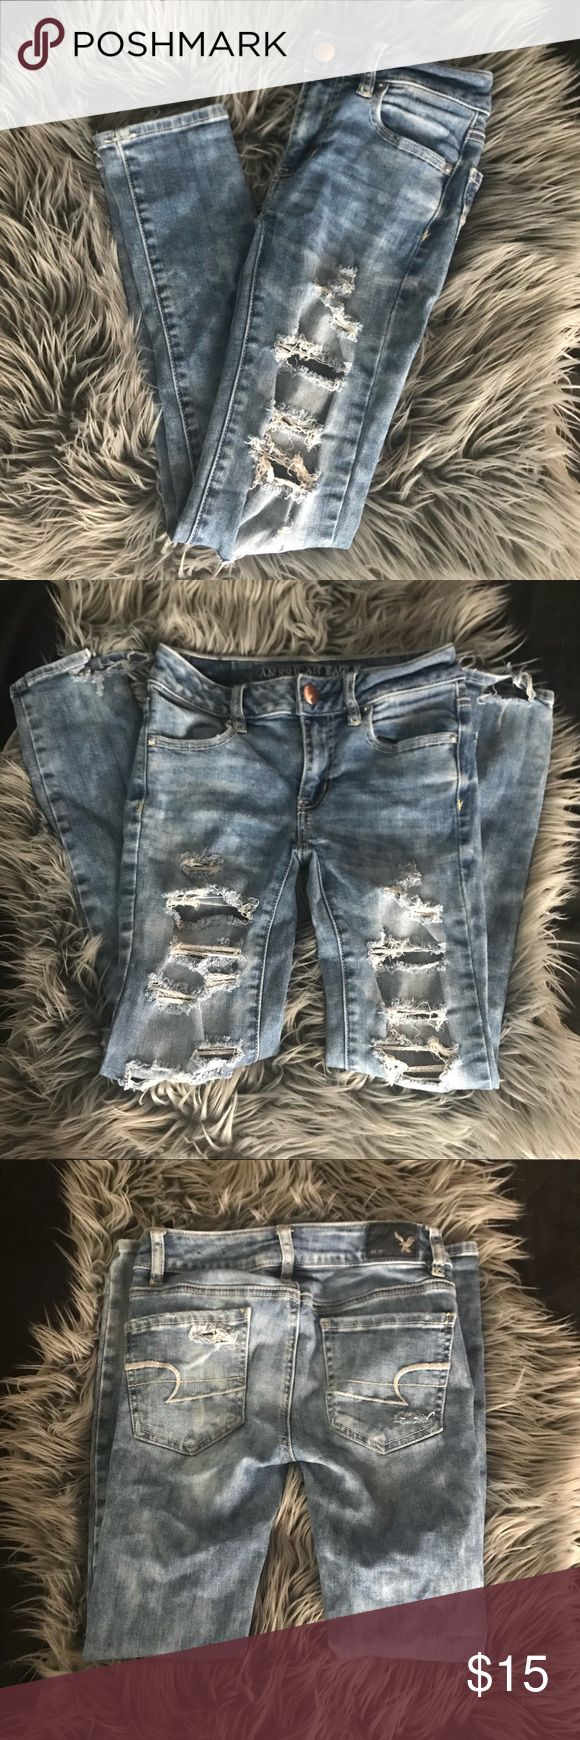 American Eagle Ripped Jeans Never worn and in perfect condition. 32 inches in length. Jegging ankle skinny fit jeans. The jeans have super stretchy material so they're always the perfect fit. Offers welcome but no trades. American Eagle Outfitters Jeans Skinny